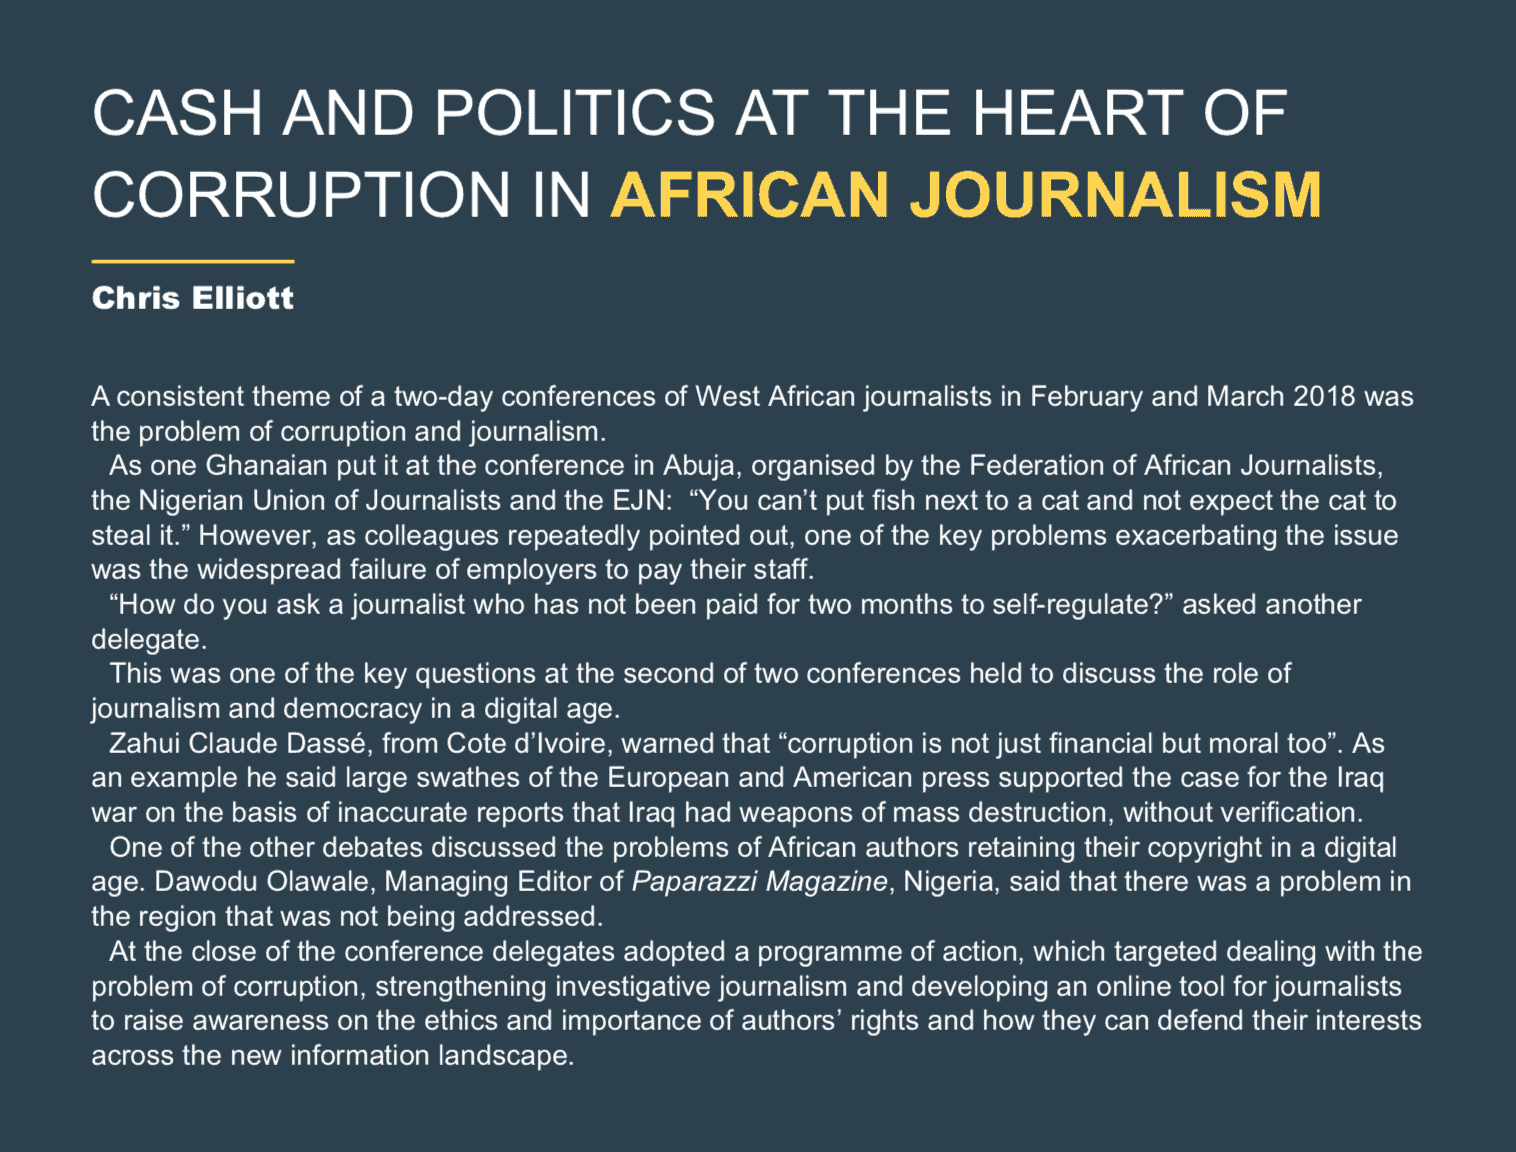 CASH AND POLITICS AT THE HEART OF CORRUPTION IN AFRICAN JOURNALISM